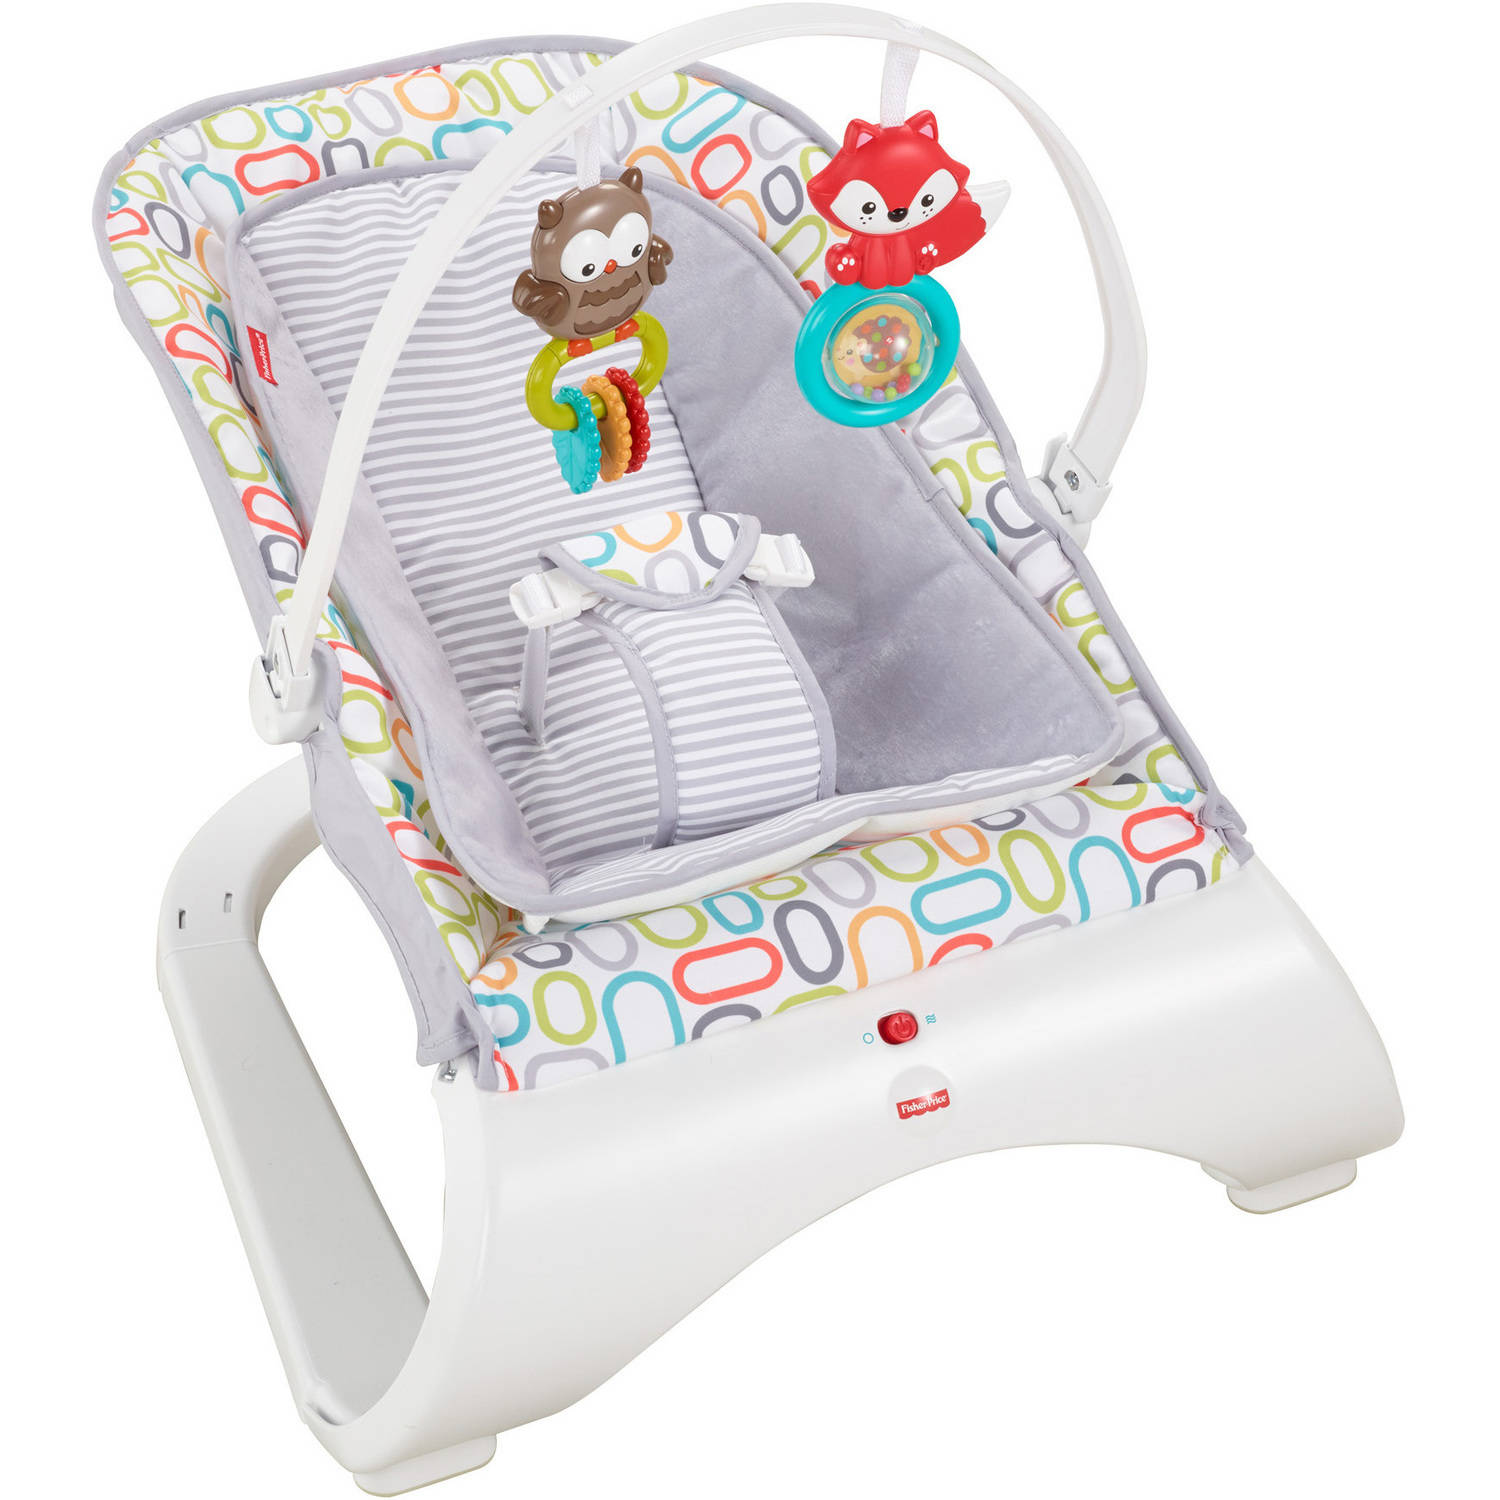 b3978a2b7 Fisher-Price Comfort Curve Bouncer - Walmart.com